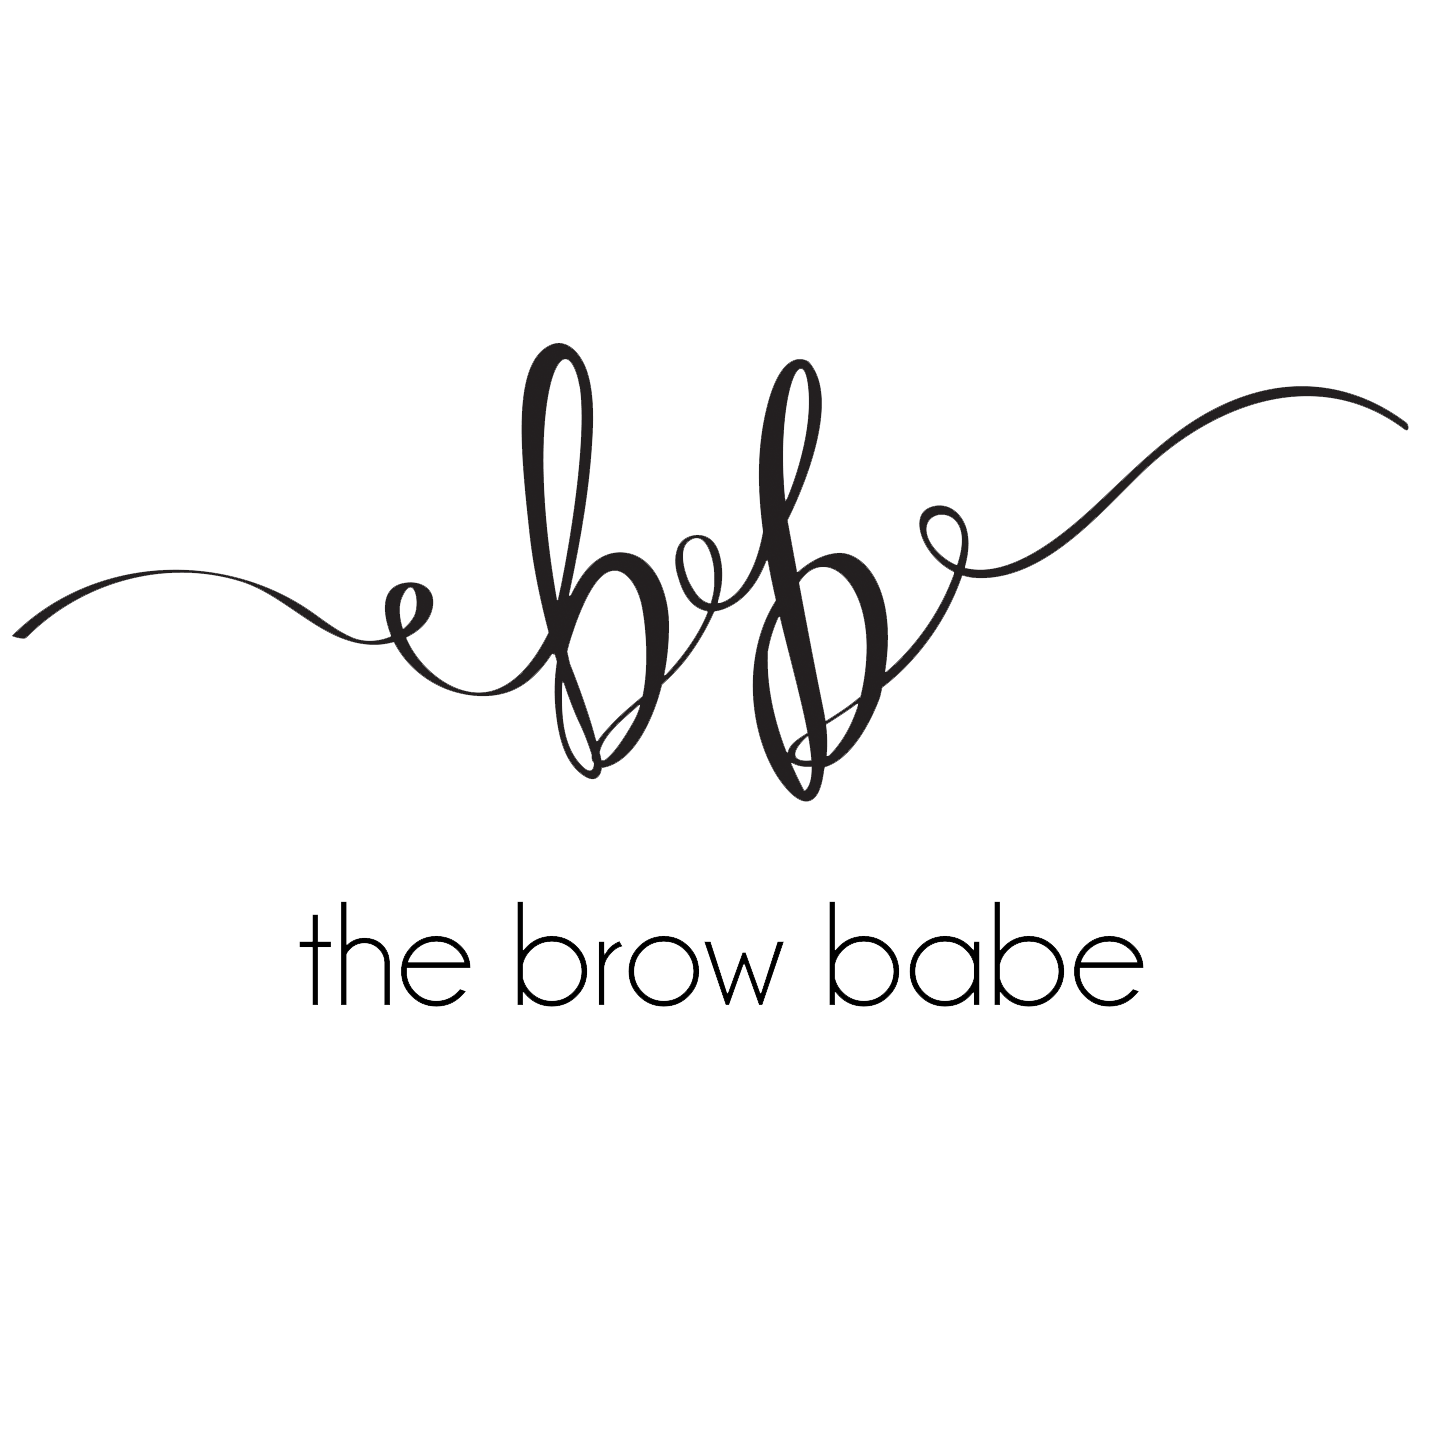 The Brow Babe